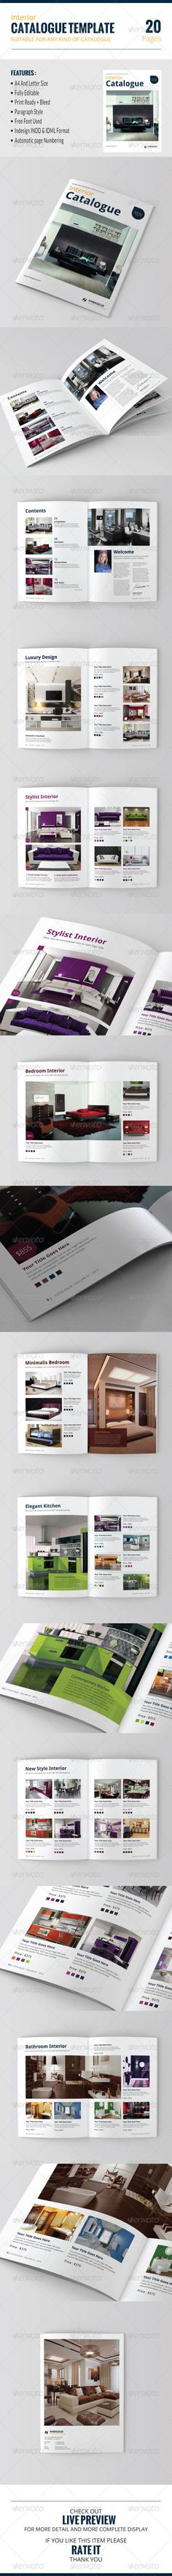 Catalog Template Vol. 01 http://graphicriver.net/item/catalog-template-vol-01/8532394?WT.ac=portfolio&WT.z_author=habageud